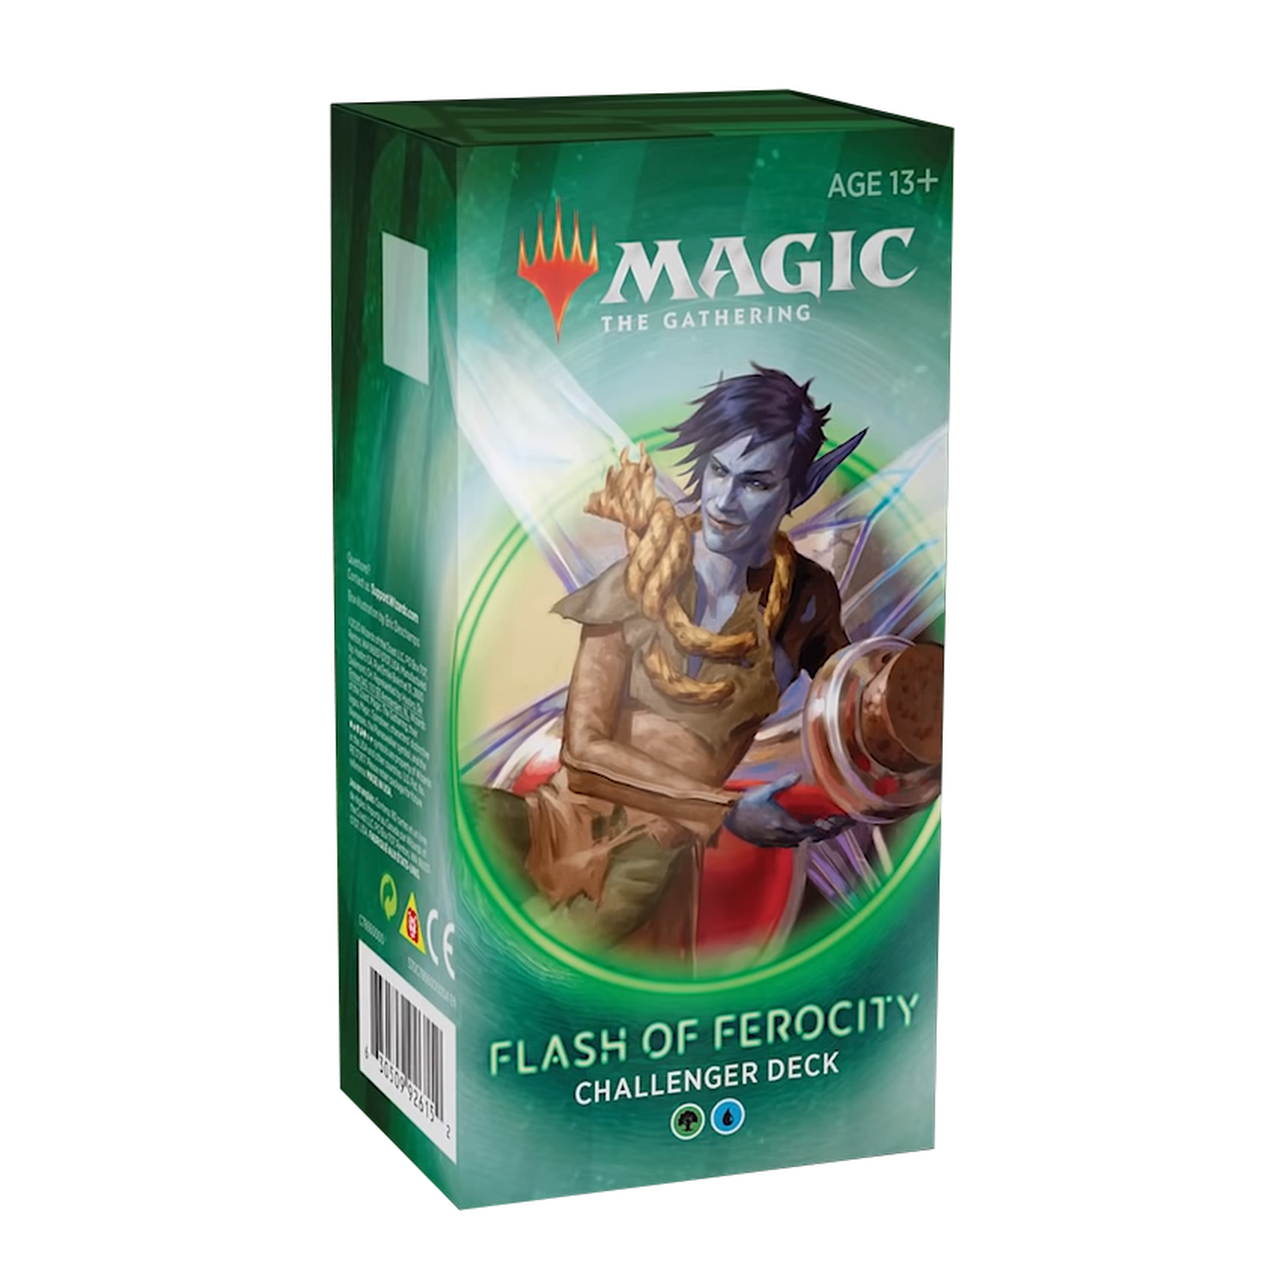 Magic: The Gathering Challenger Deck 2020 - Flash of Ferocity | Affinity Games